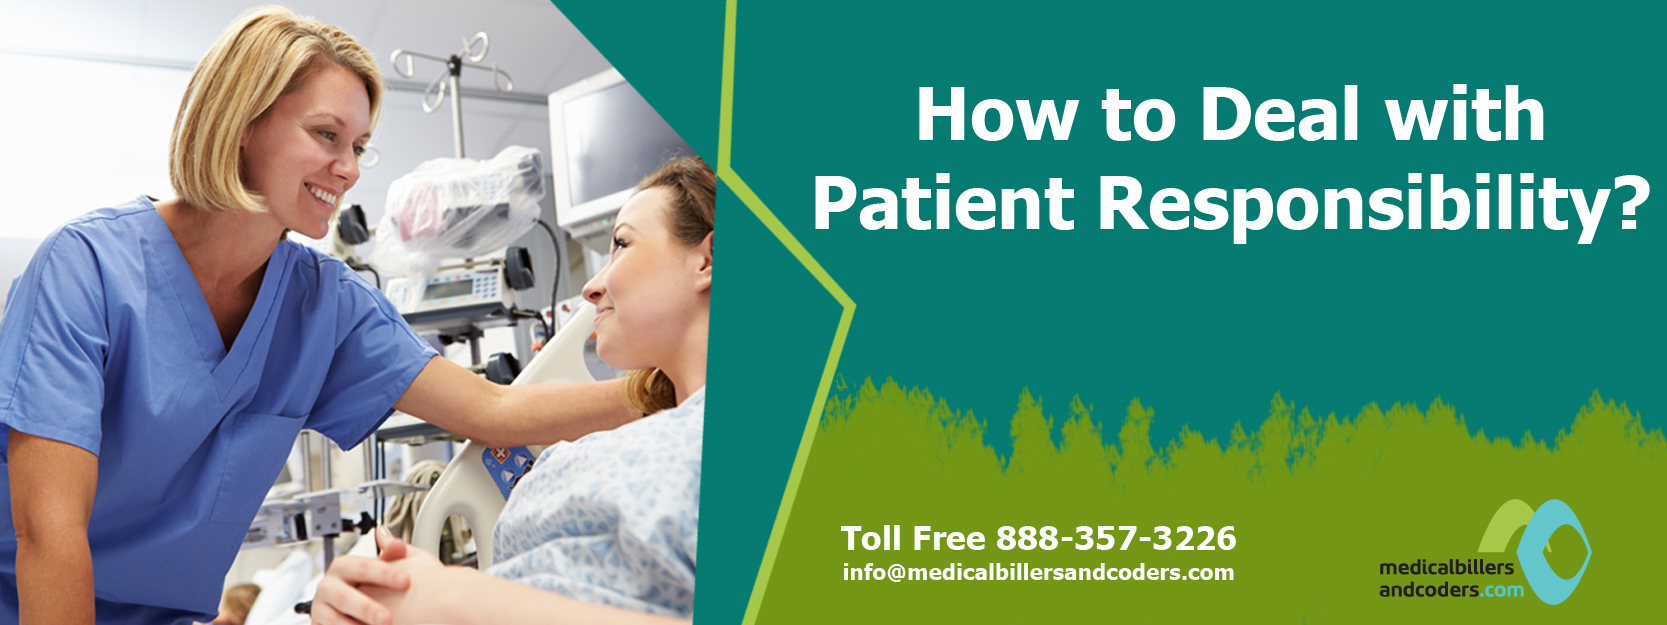 How to Deal with Patient Responsibility?